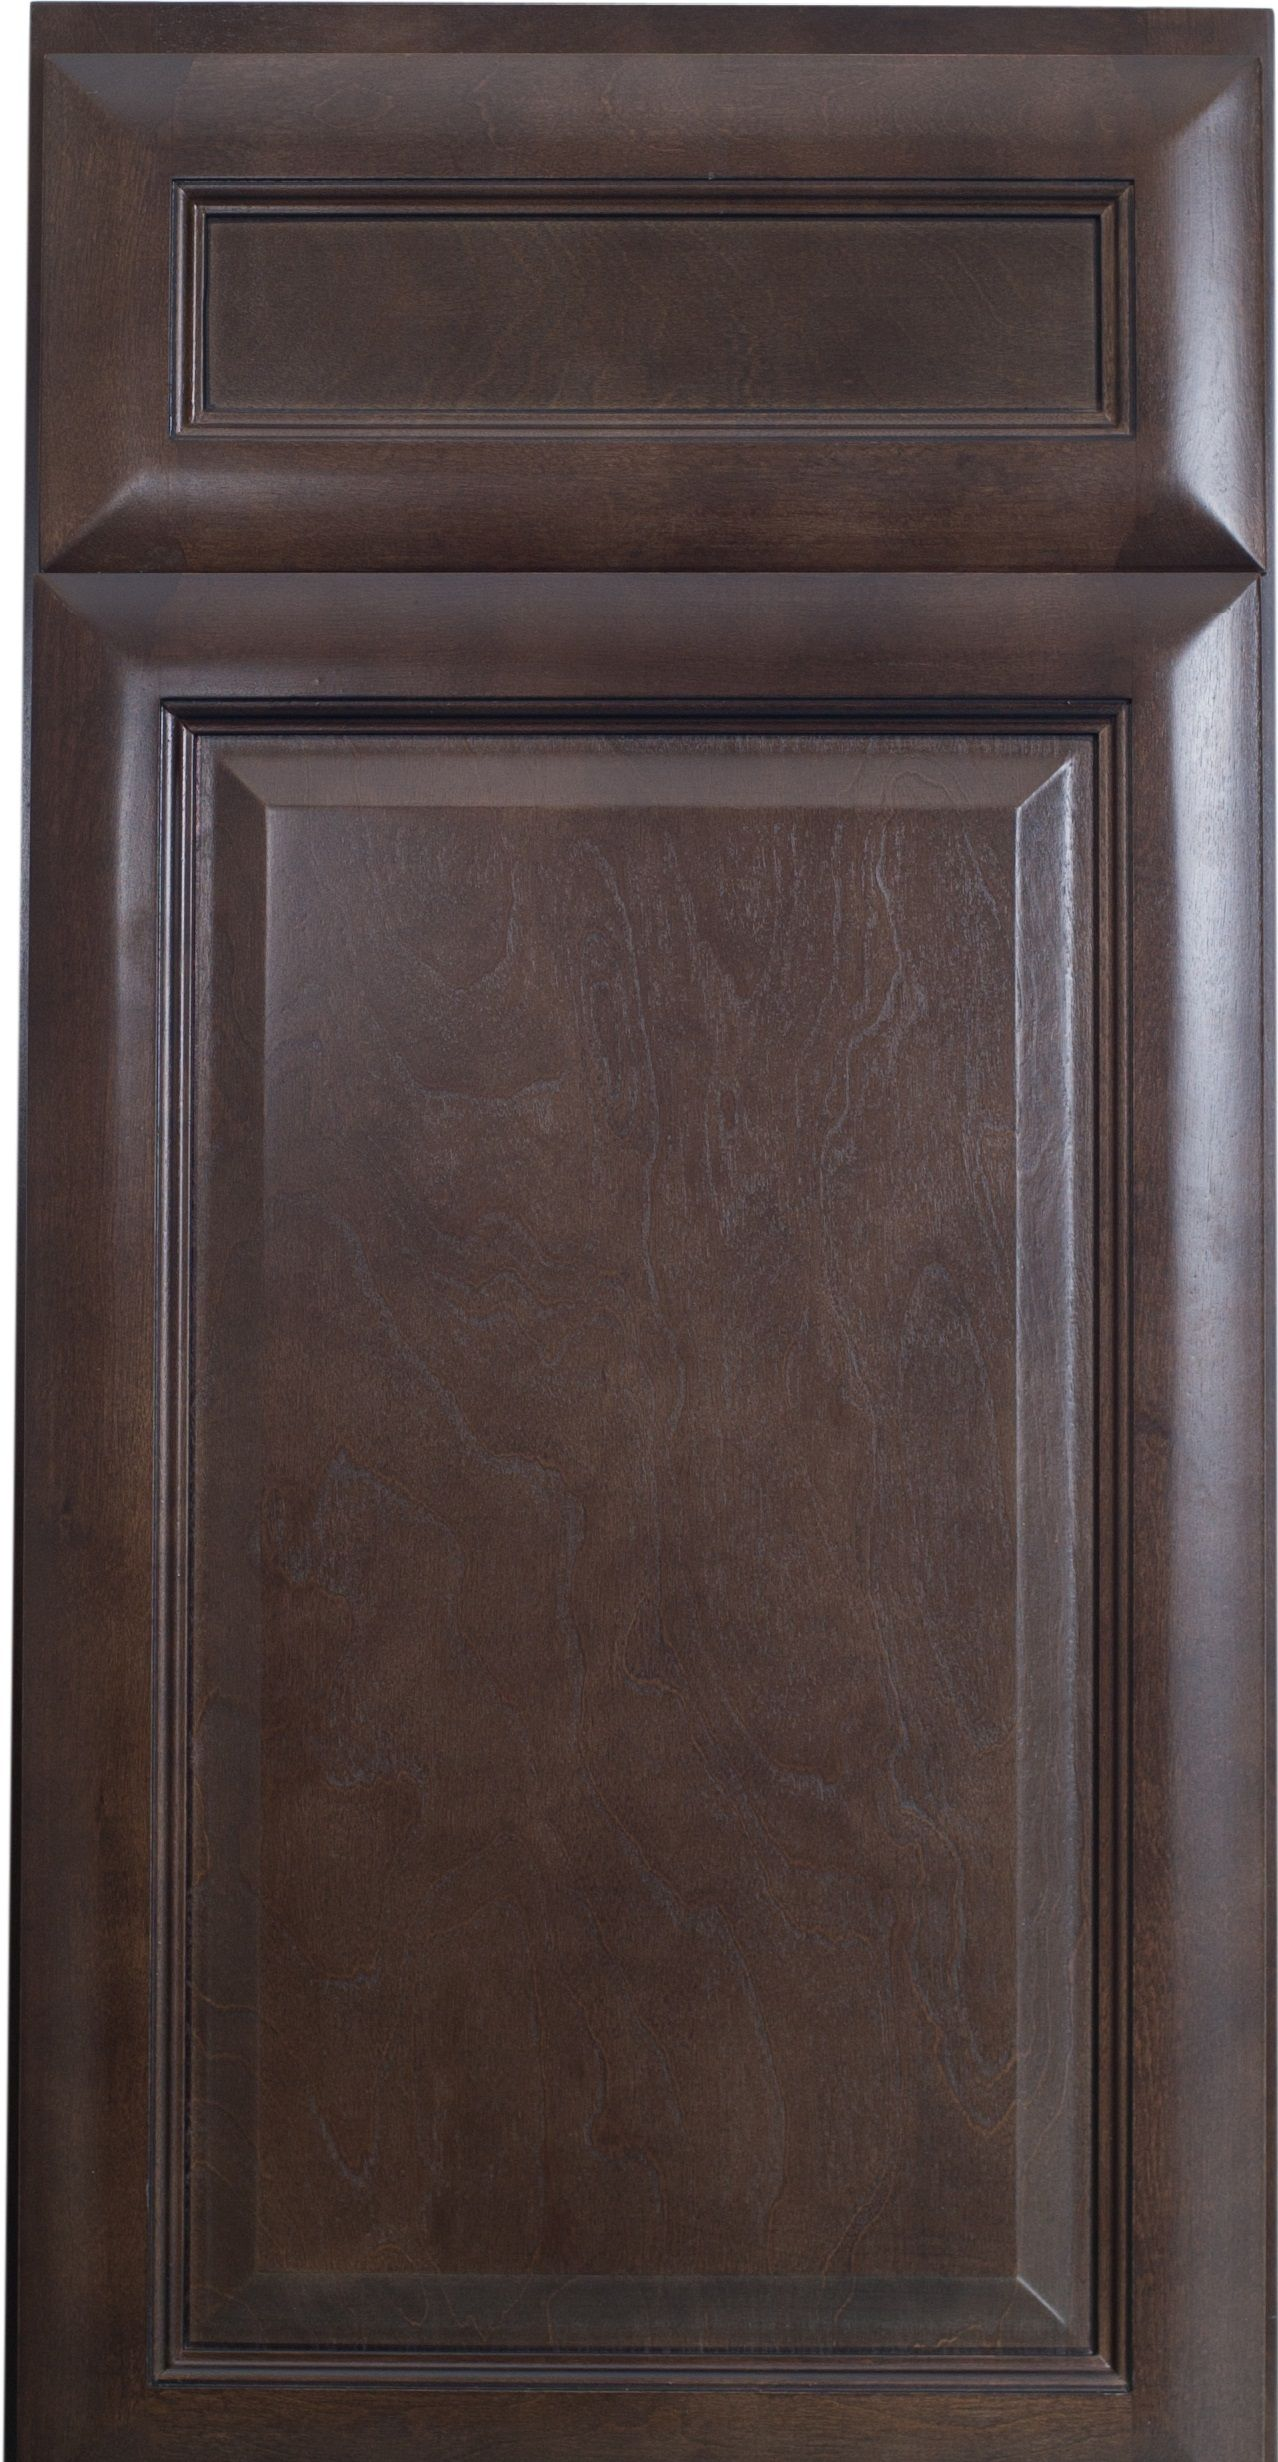 Rta Cabinet Doors Styles Are Available In Many Colors Finishes And